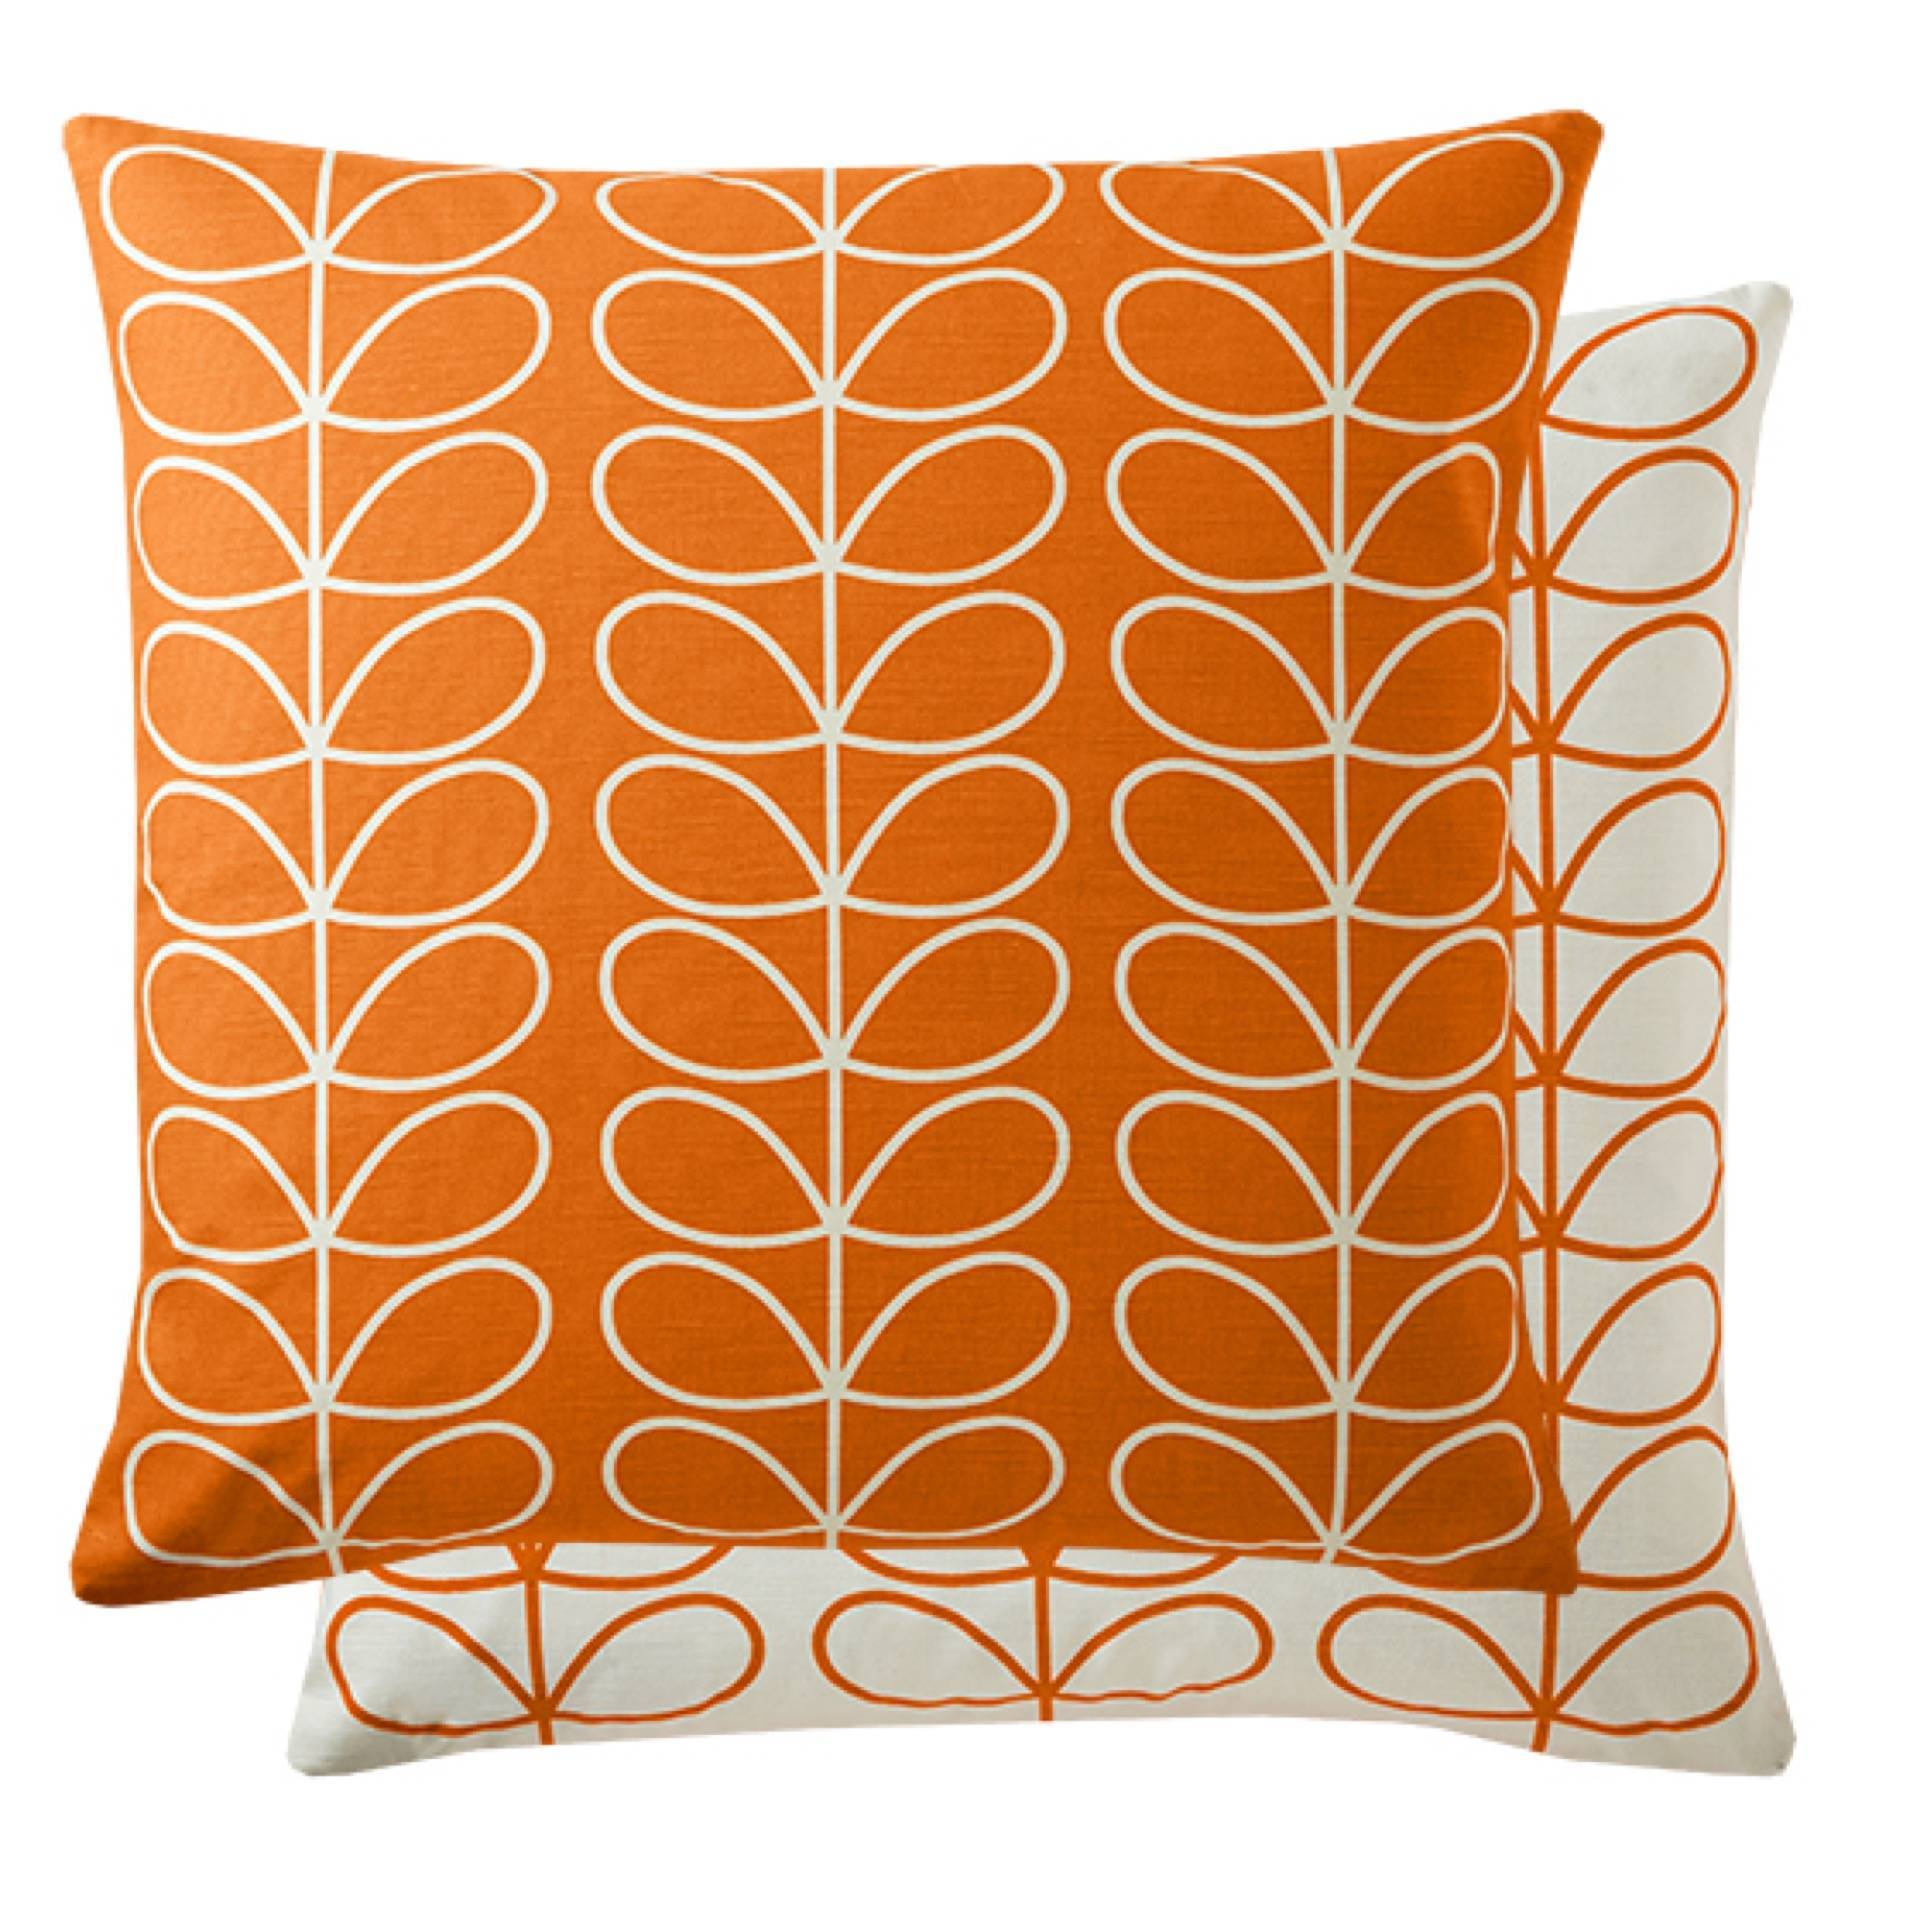 Small Linear Stem Cushion - Persimmon